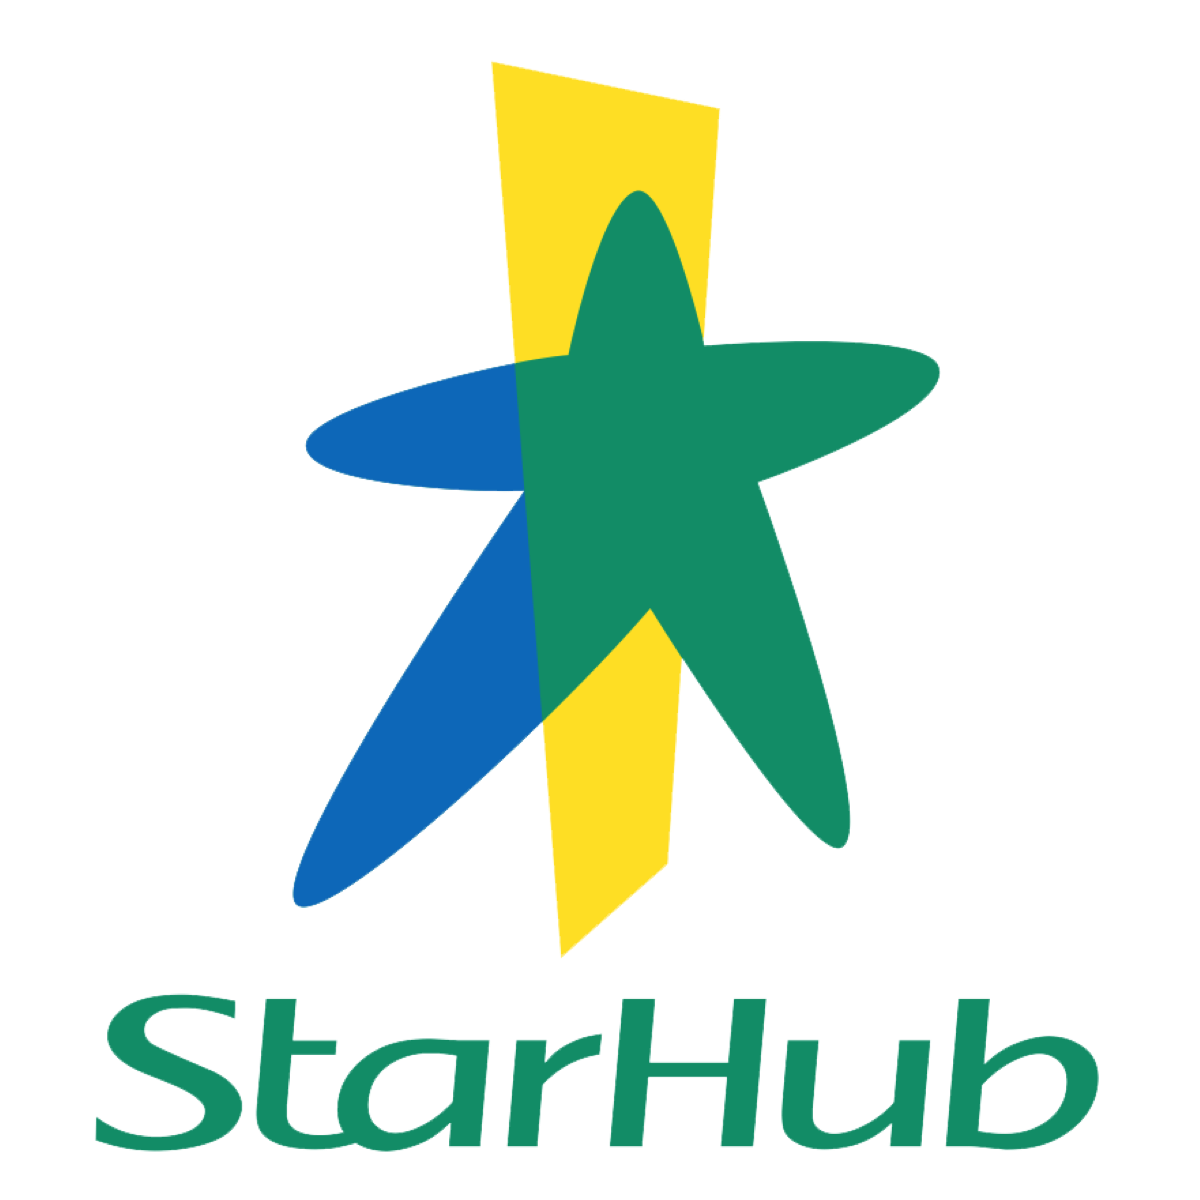 StarHub - UOB Kay Hian Research 2018-08-08: 2q18: New Ceo Injects New Vigour